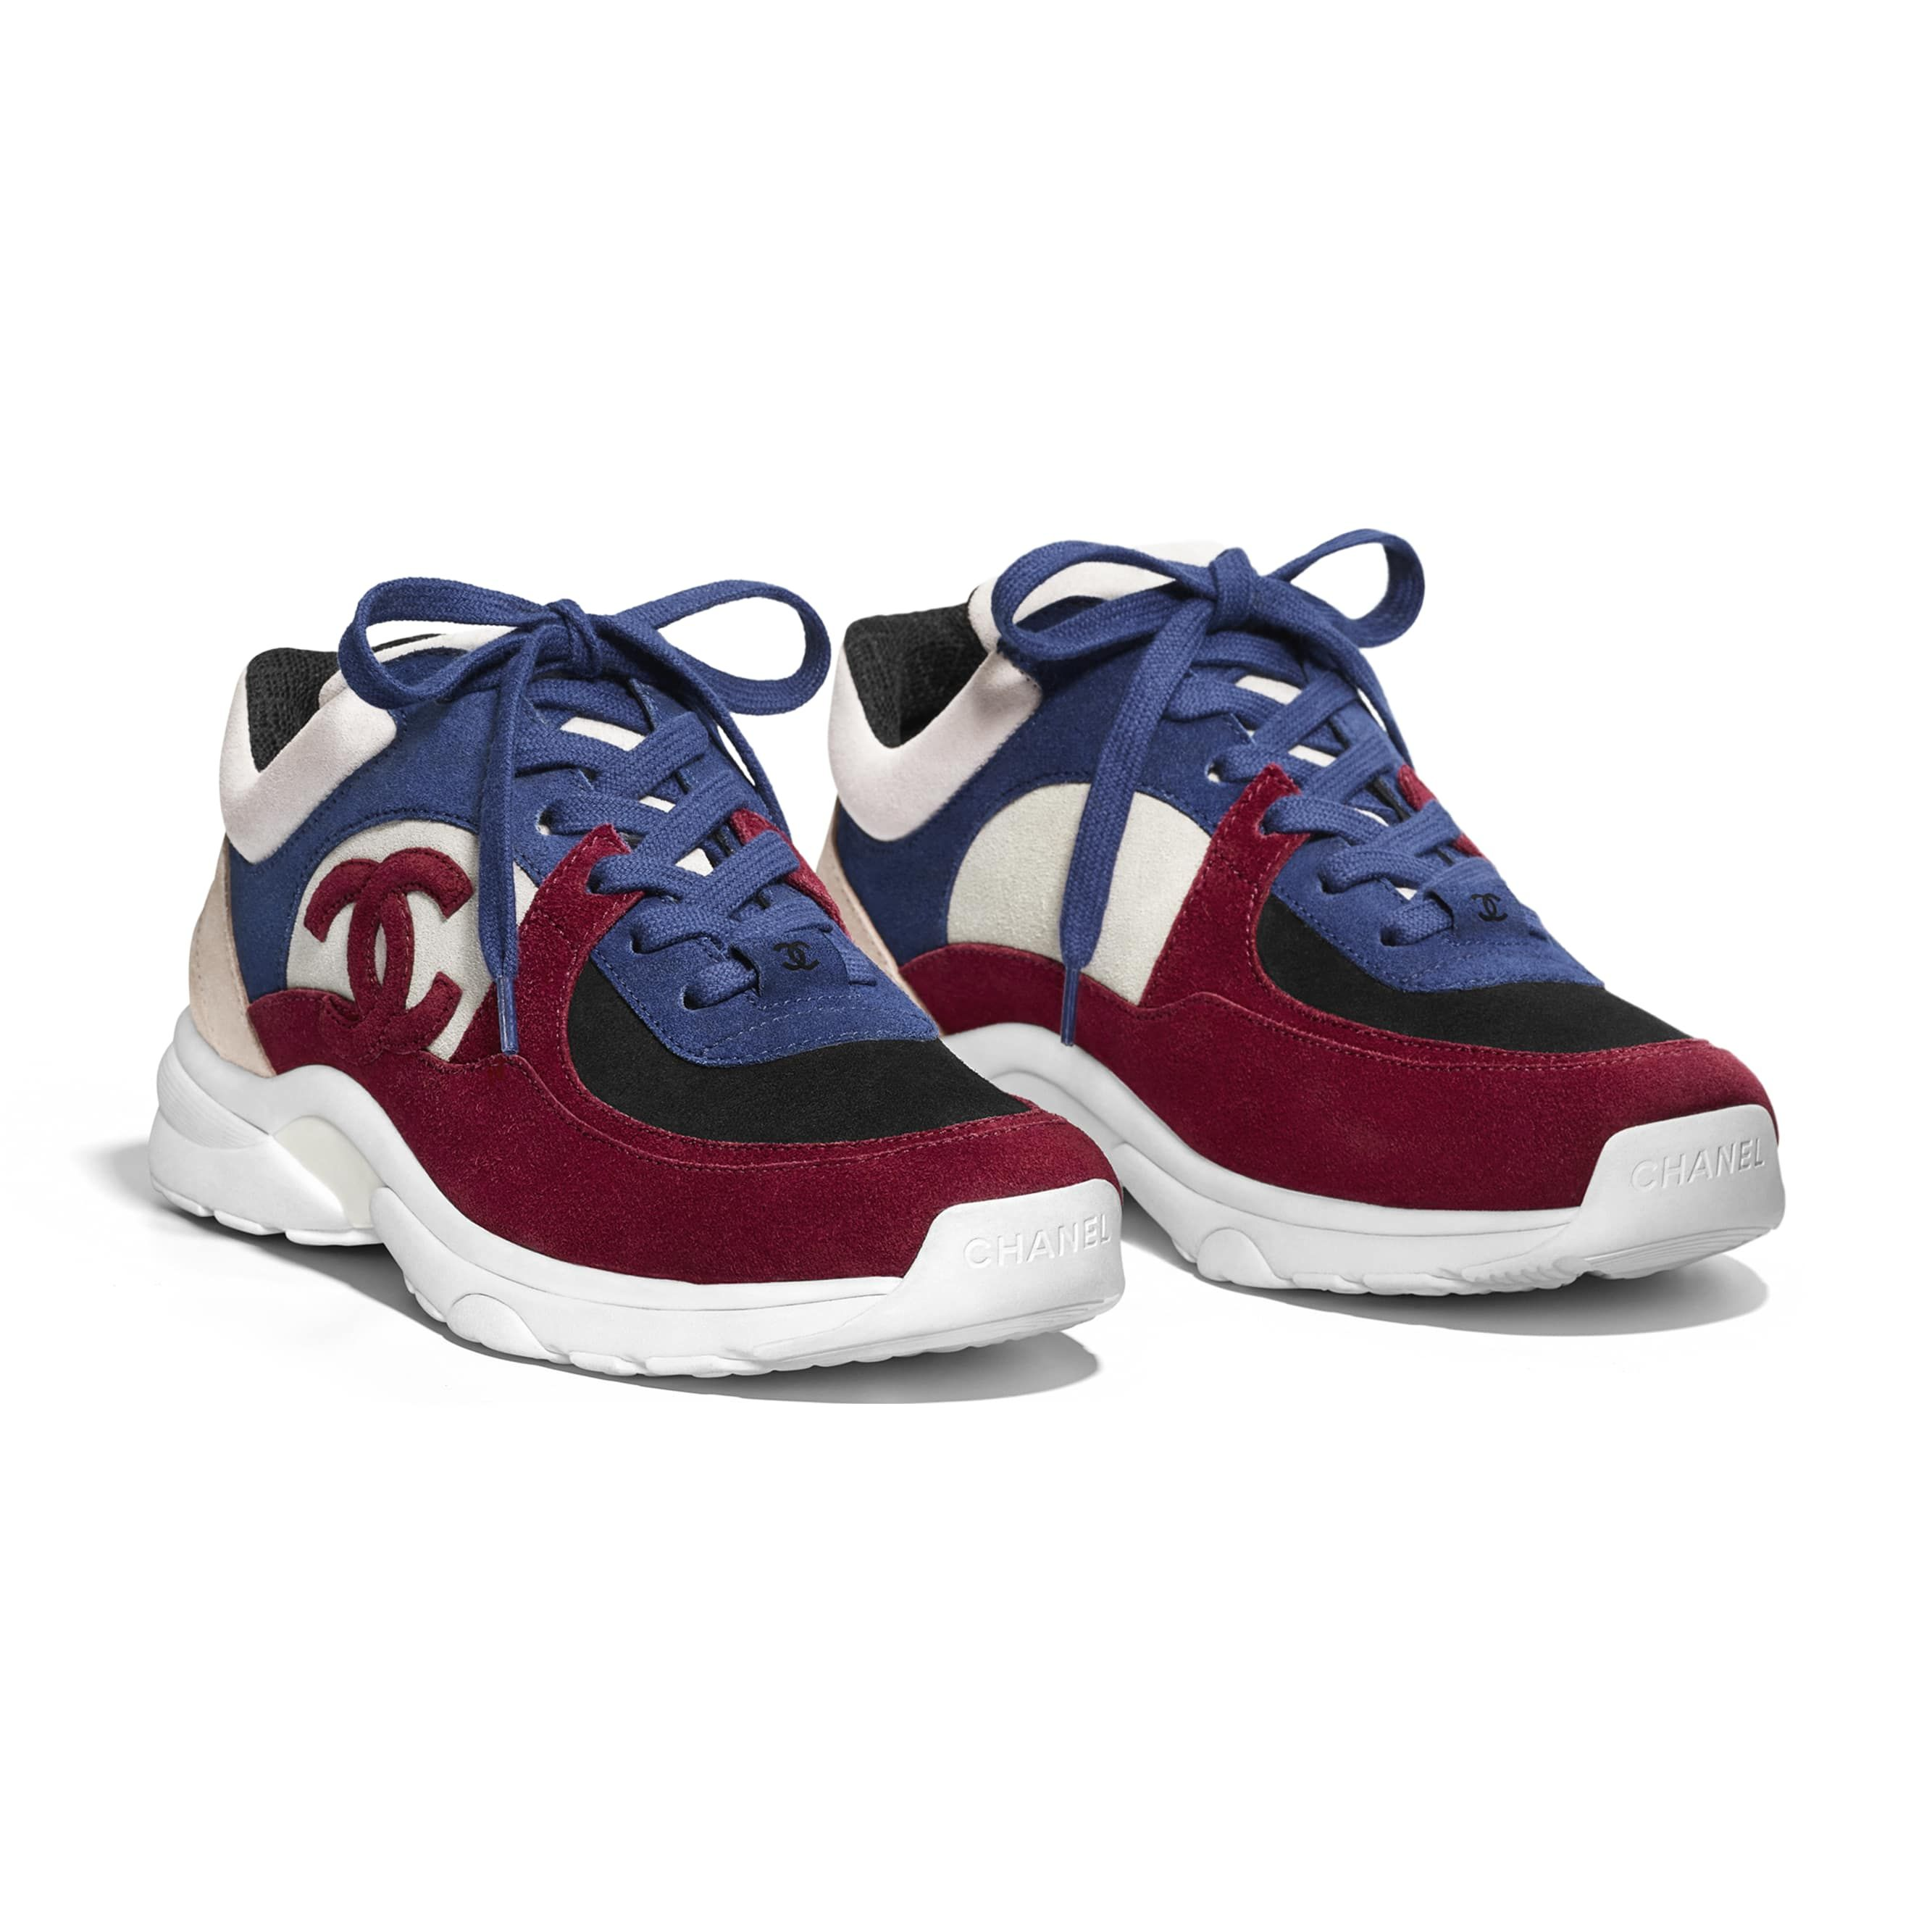 1747c19ffac4 Sneakers - Navy Blue   Red - Suede Calfskin - Alternative view - see  standard sized version